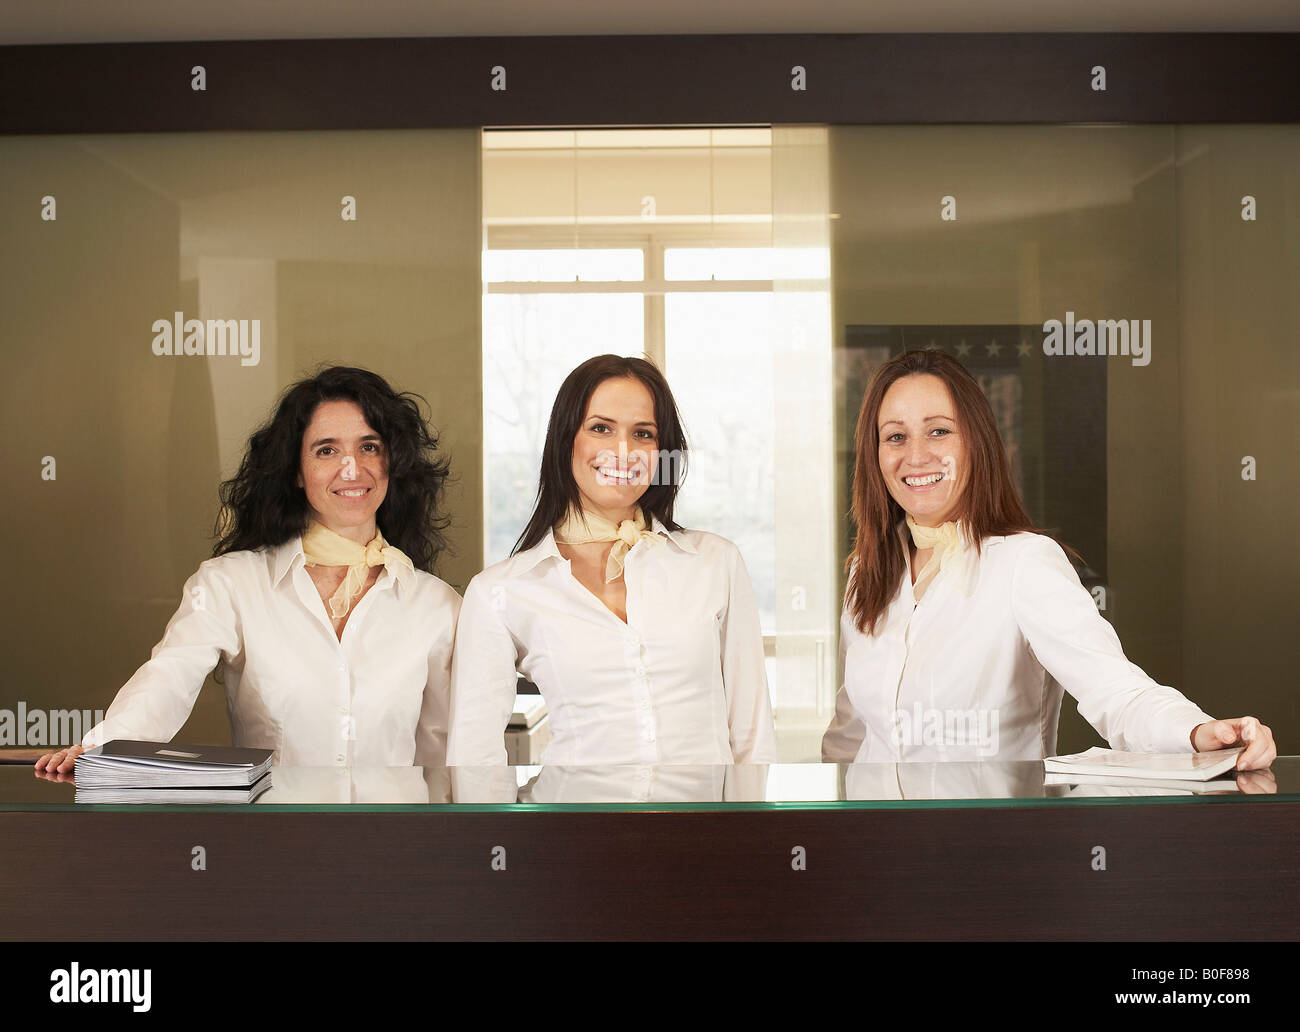 Receptionists behind hotel counter - Stock Image